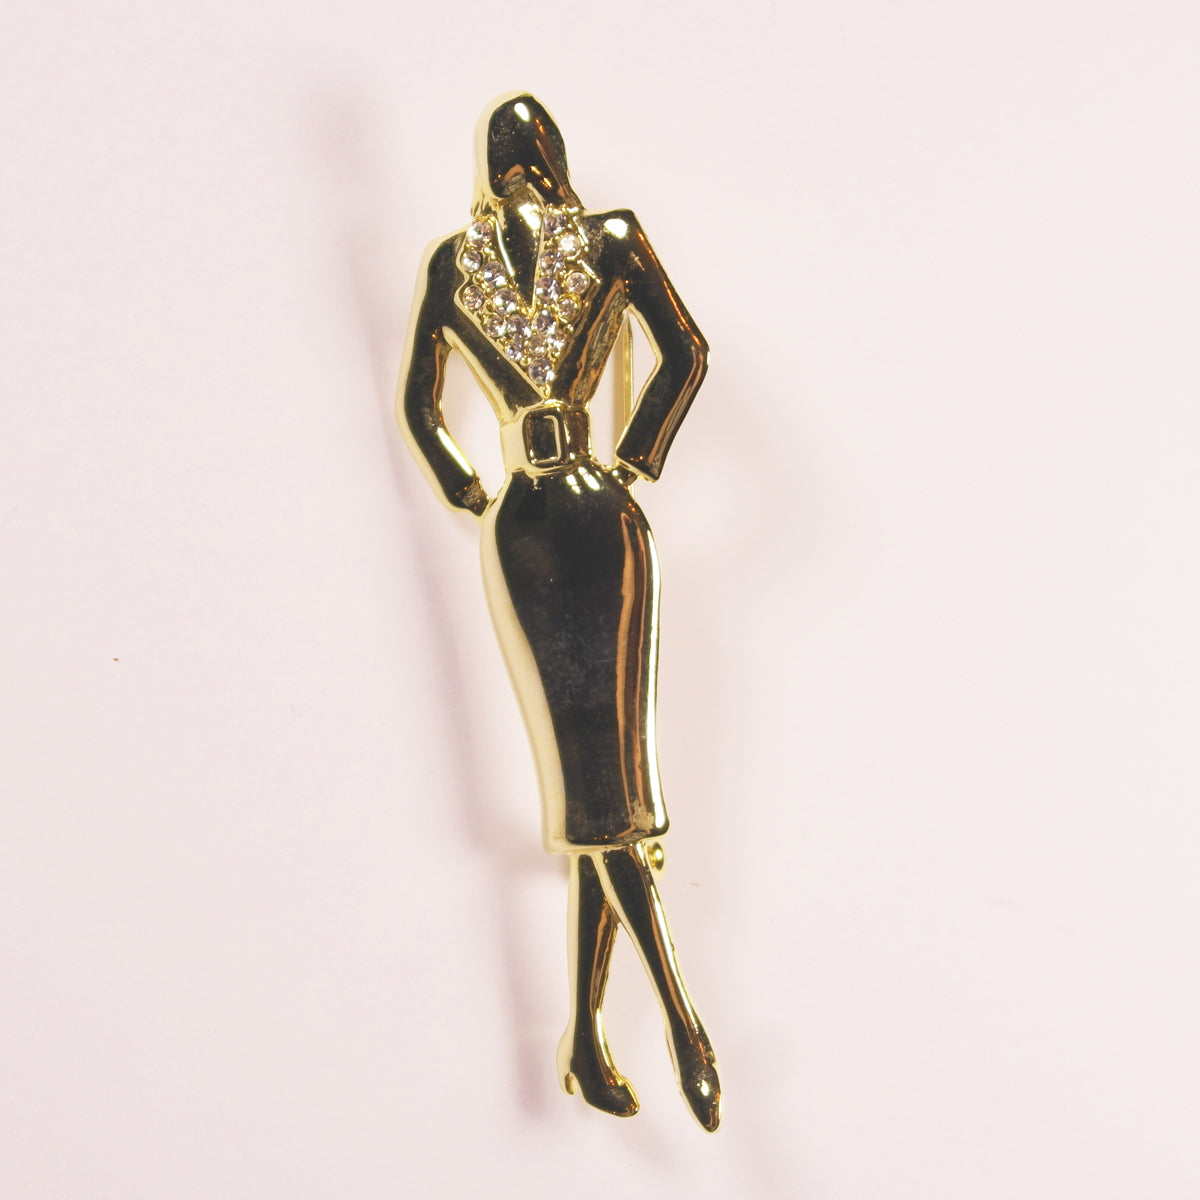 1980's gold tone and diamante elegant lady brooch